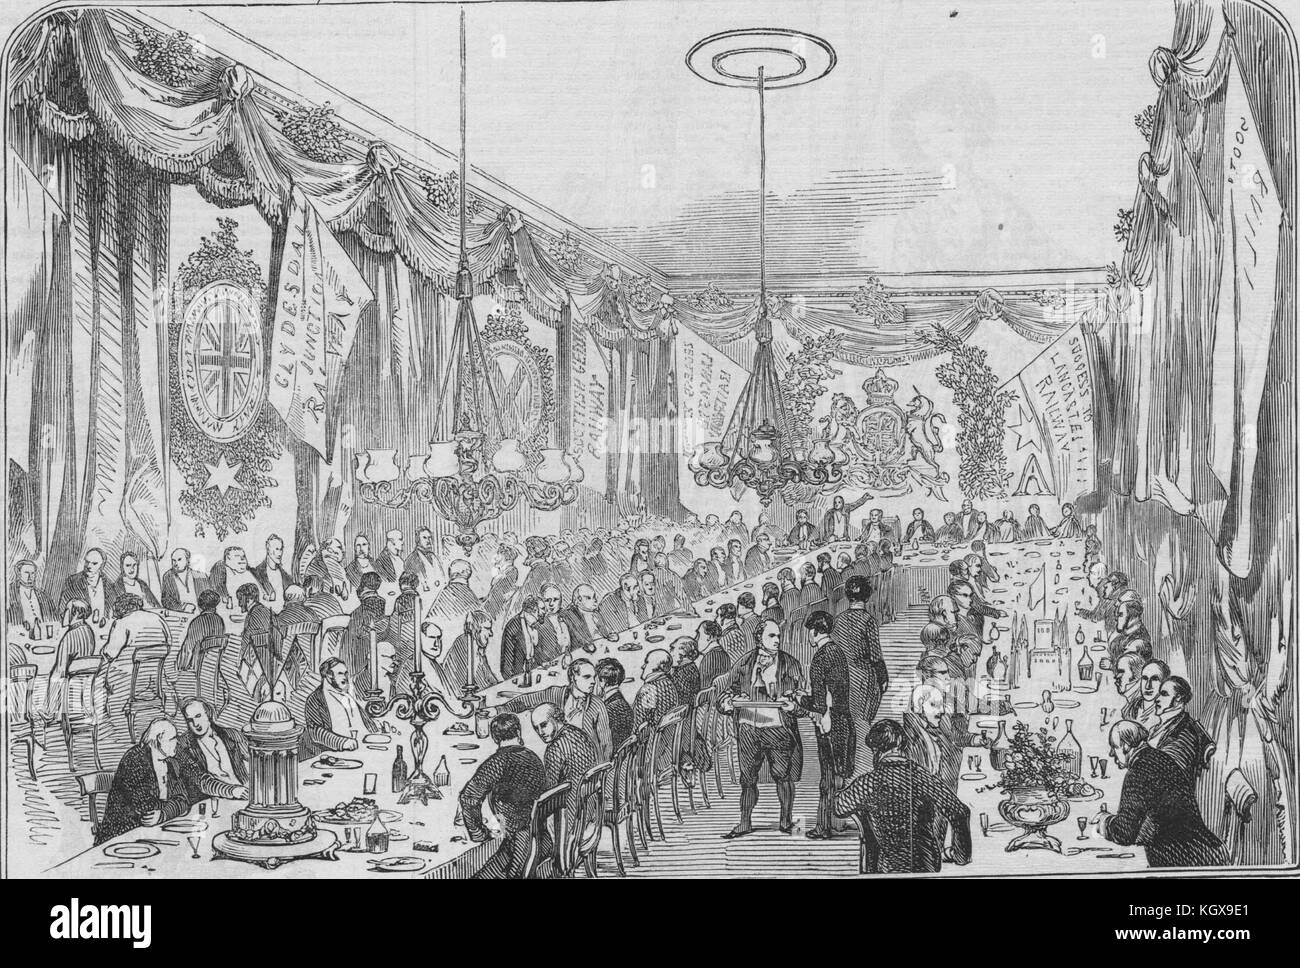 Railway contractors' dinner at the Crown & Mitre Inn, Carlisle. Cumbria 1846. The Illustrated London News - Stock Image